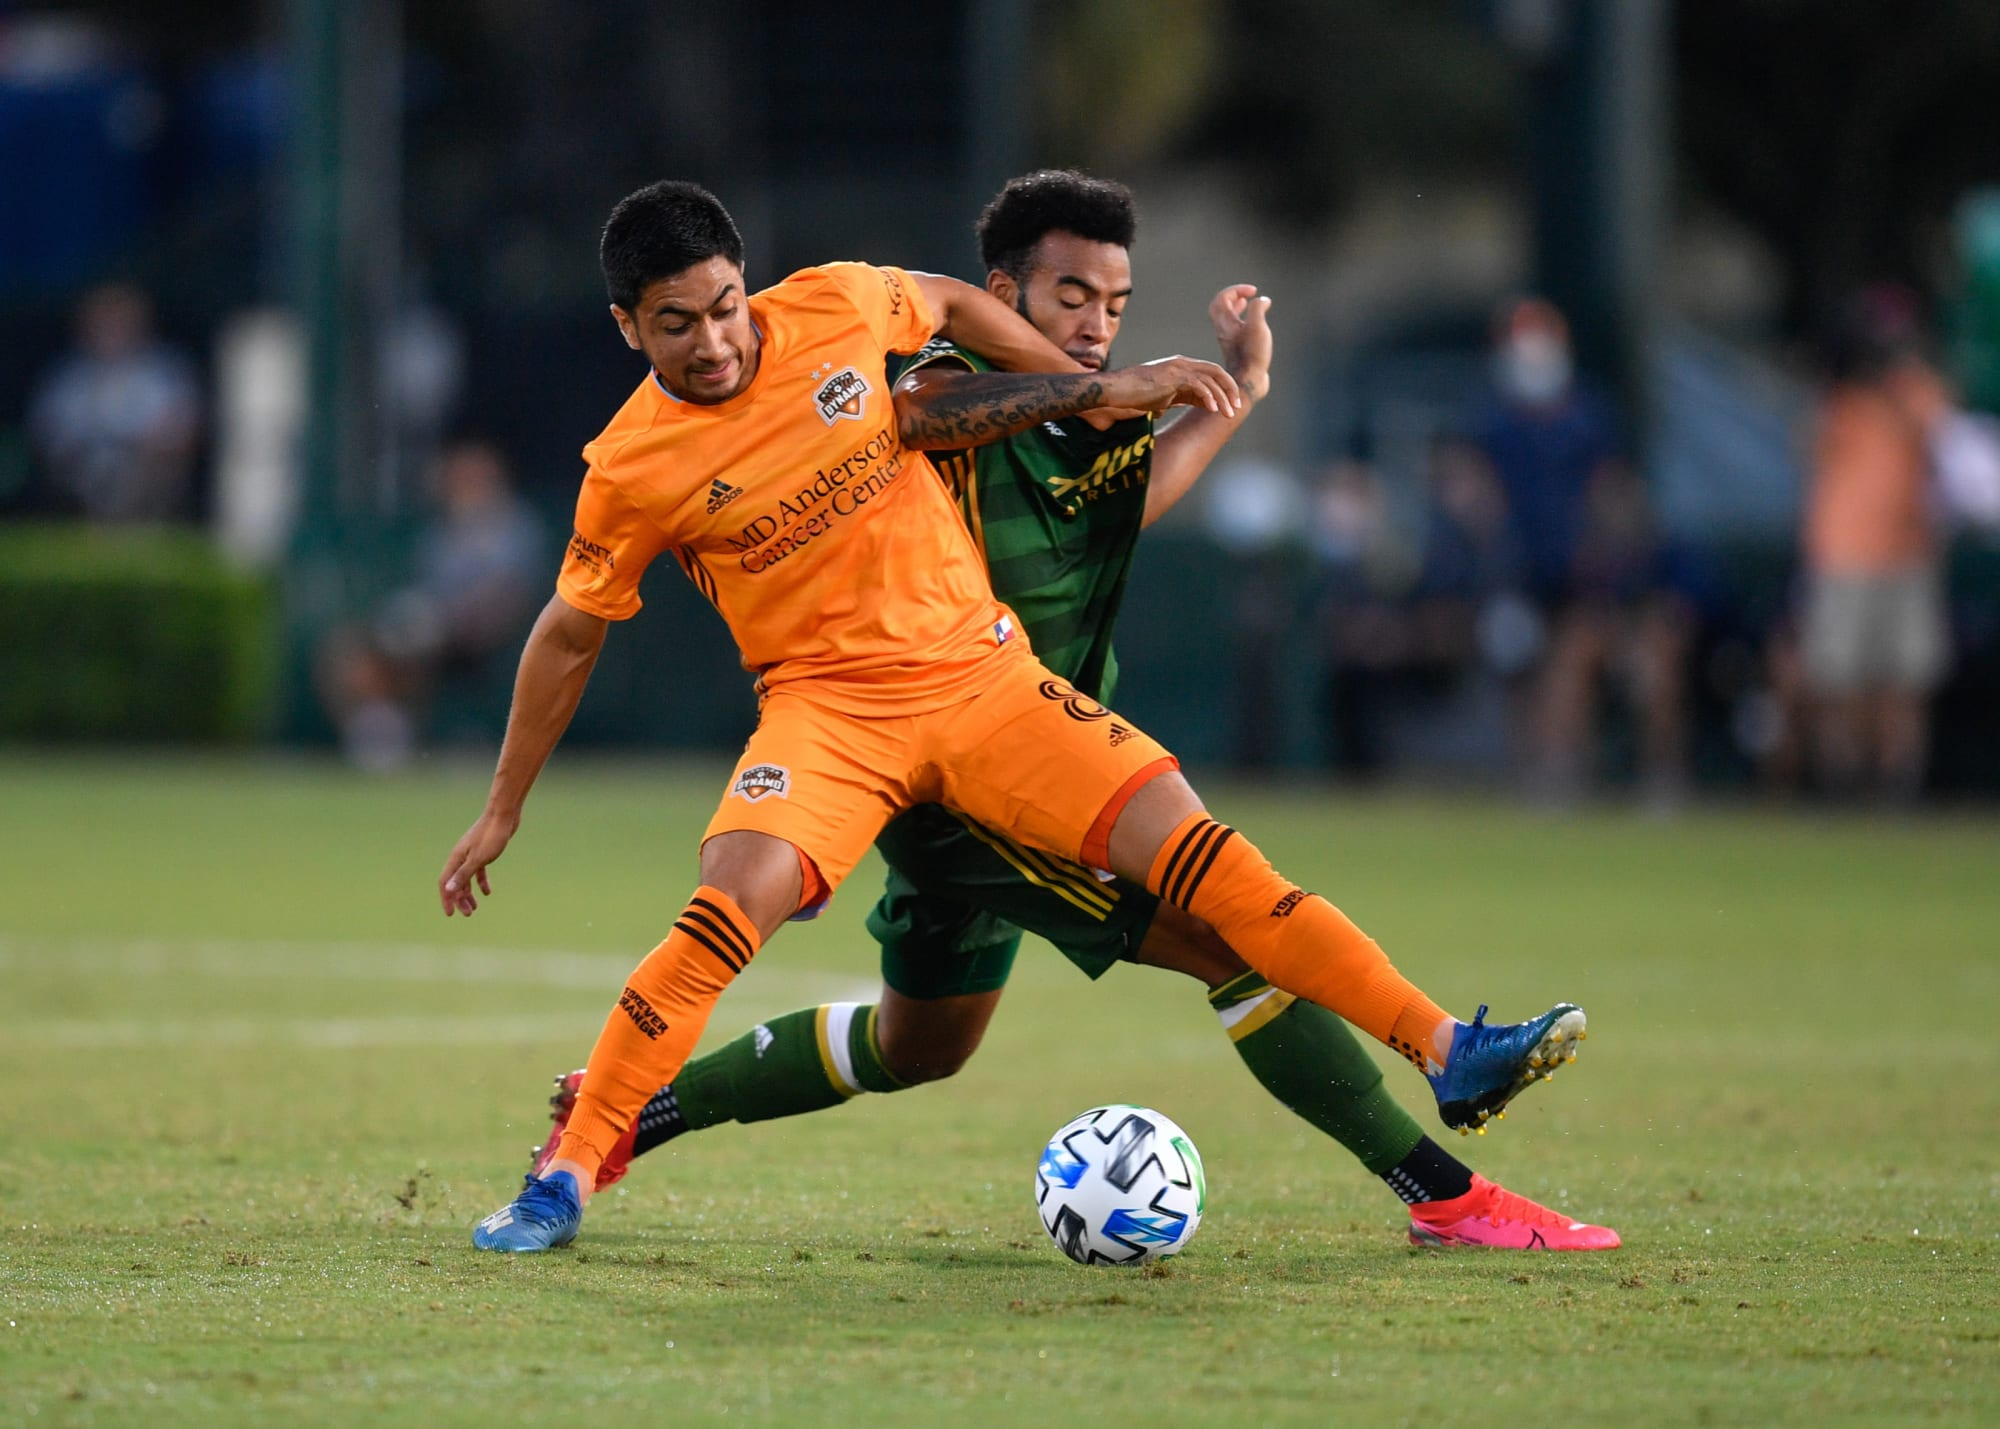 Houston Dynamo: Easily winning matches thanks to roster depth